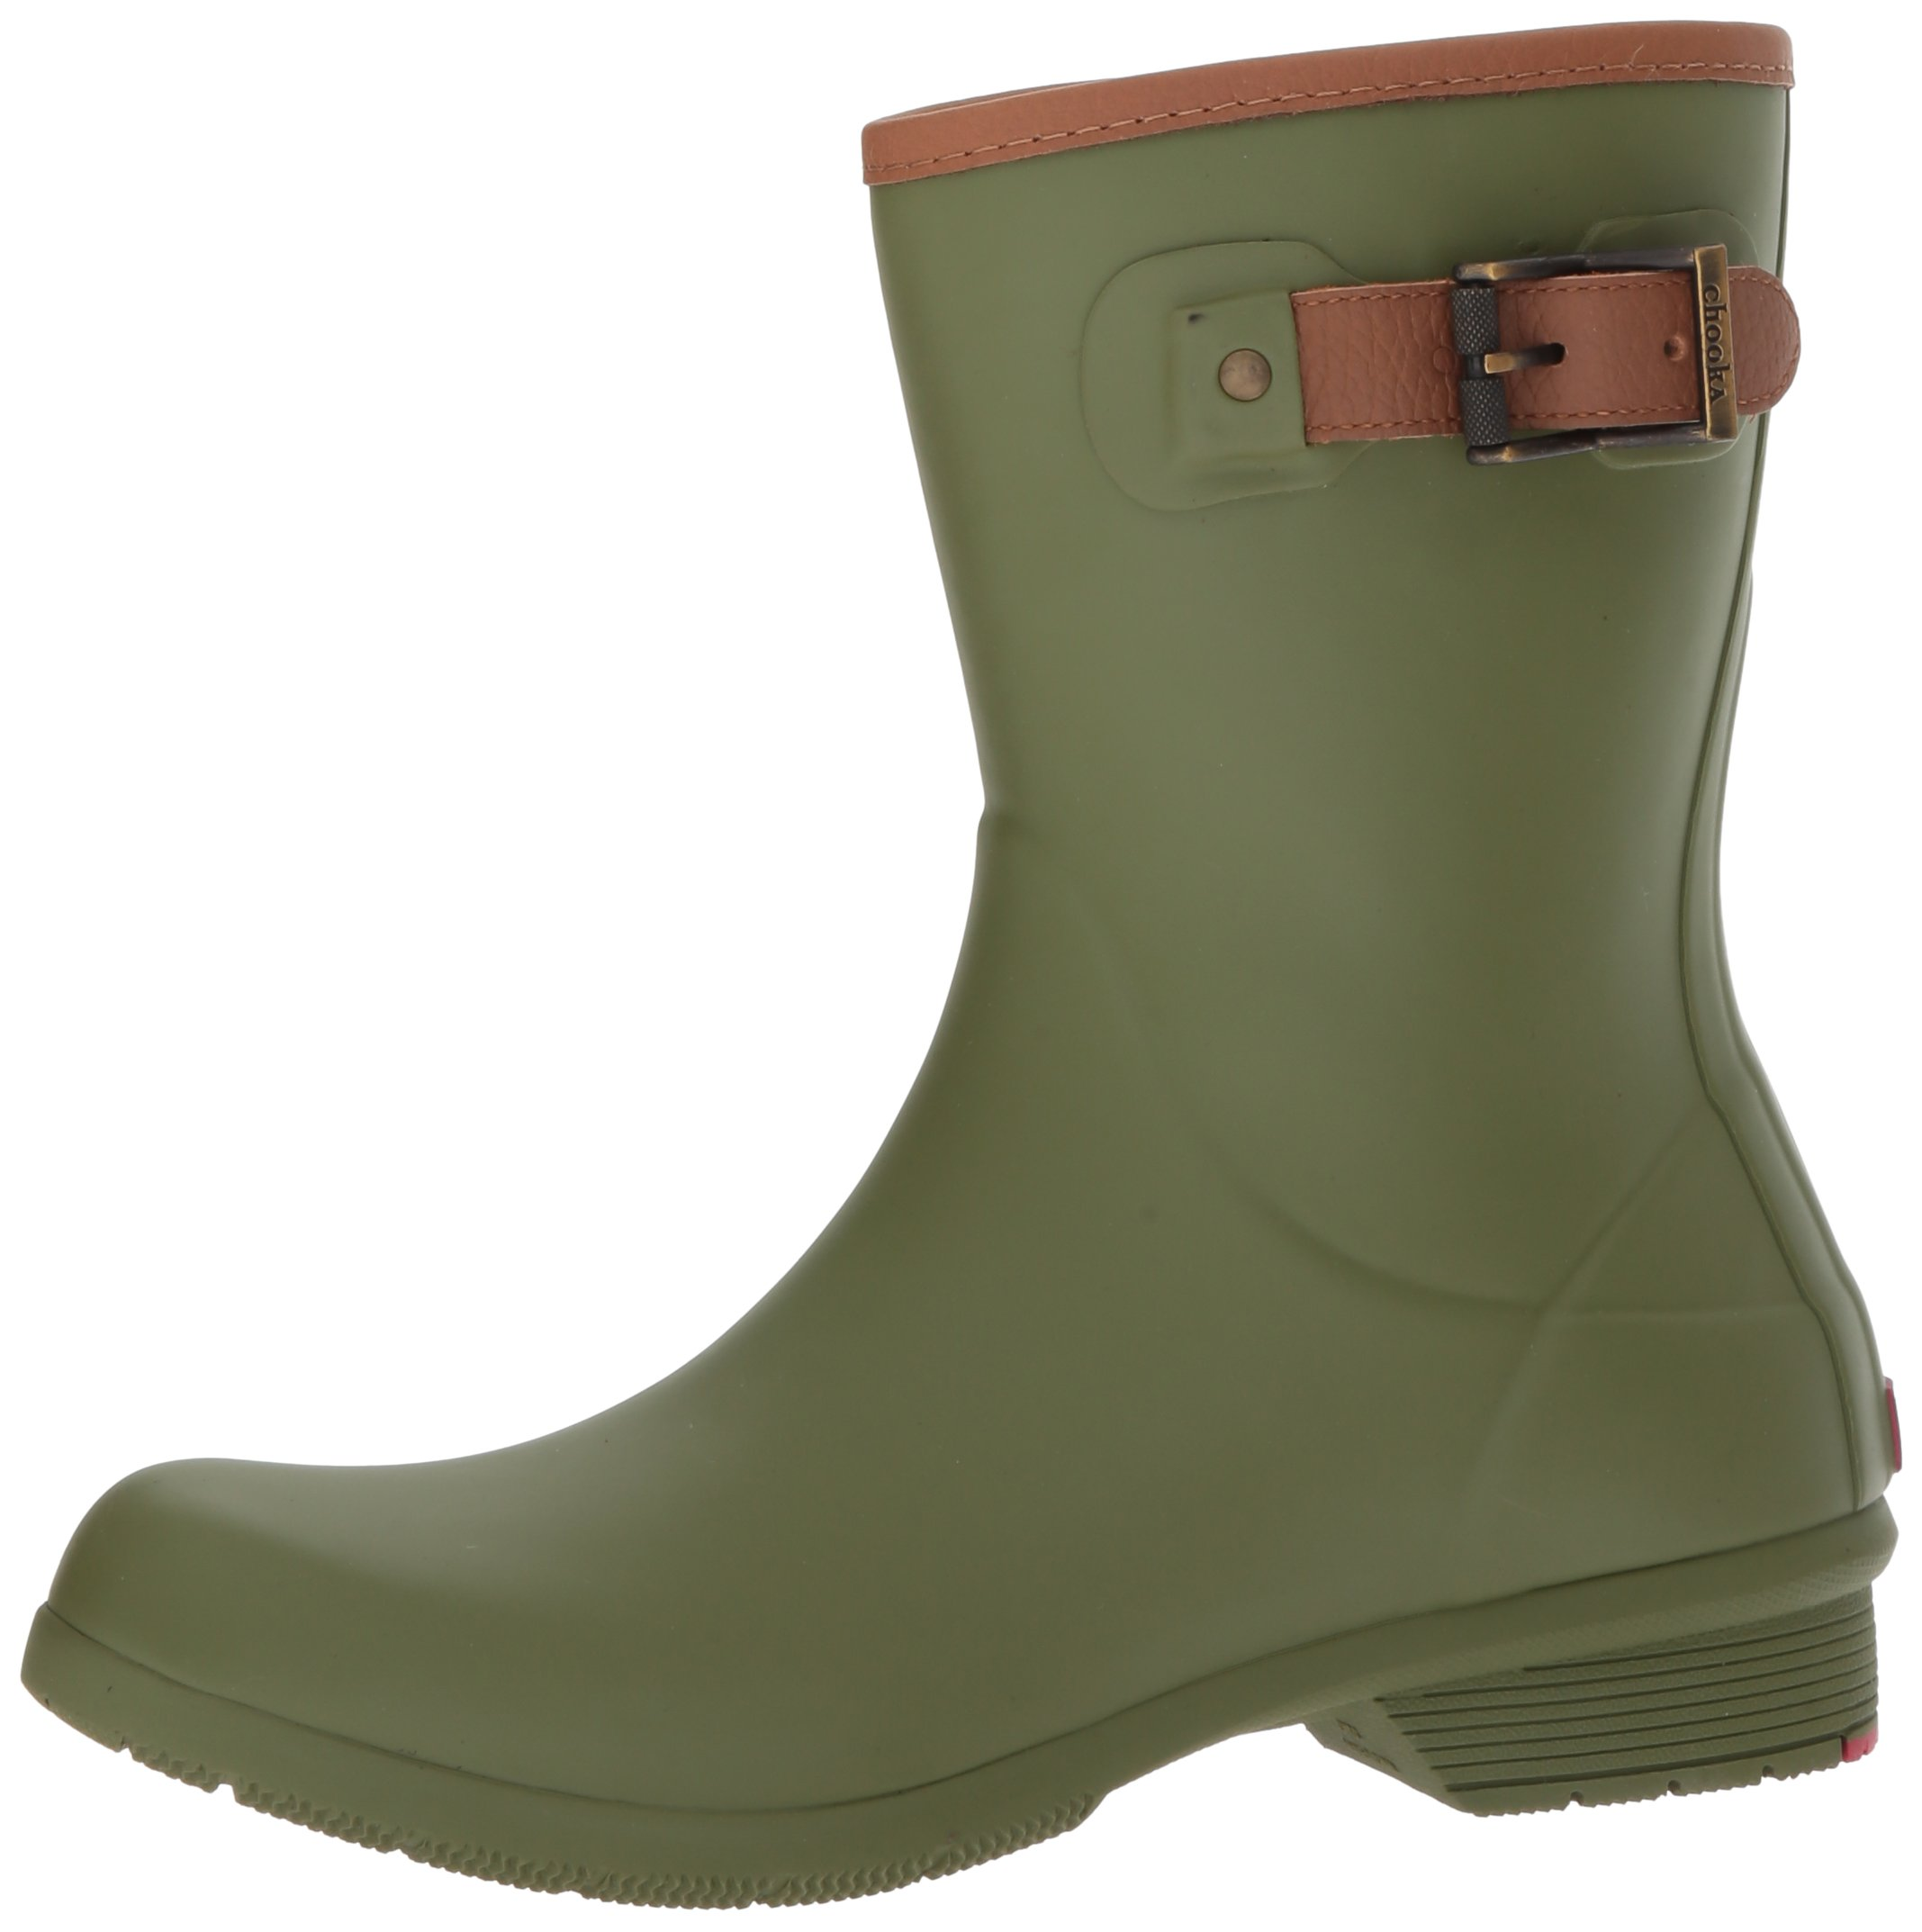 Chooka Women's Mid-Height Memory Foam Rain Boot, Olive, 9 M US by Chooka (Image #5)